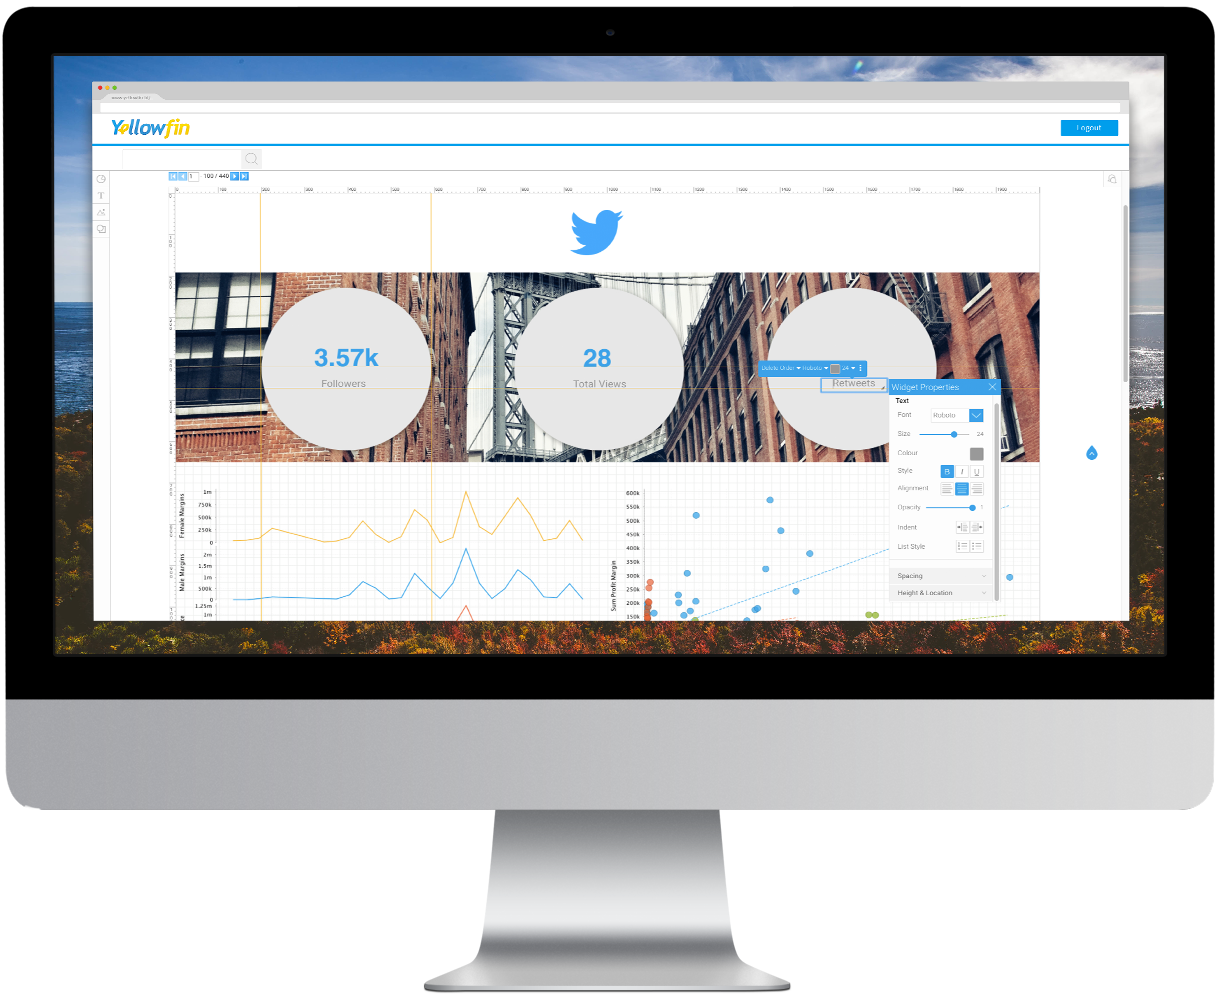 Yellowfin releases new Twitter dashboard that can analyze competitor data